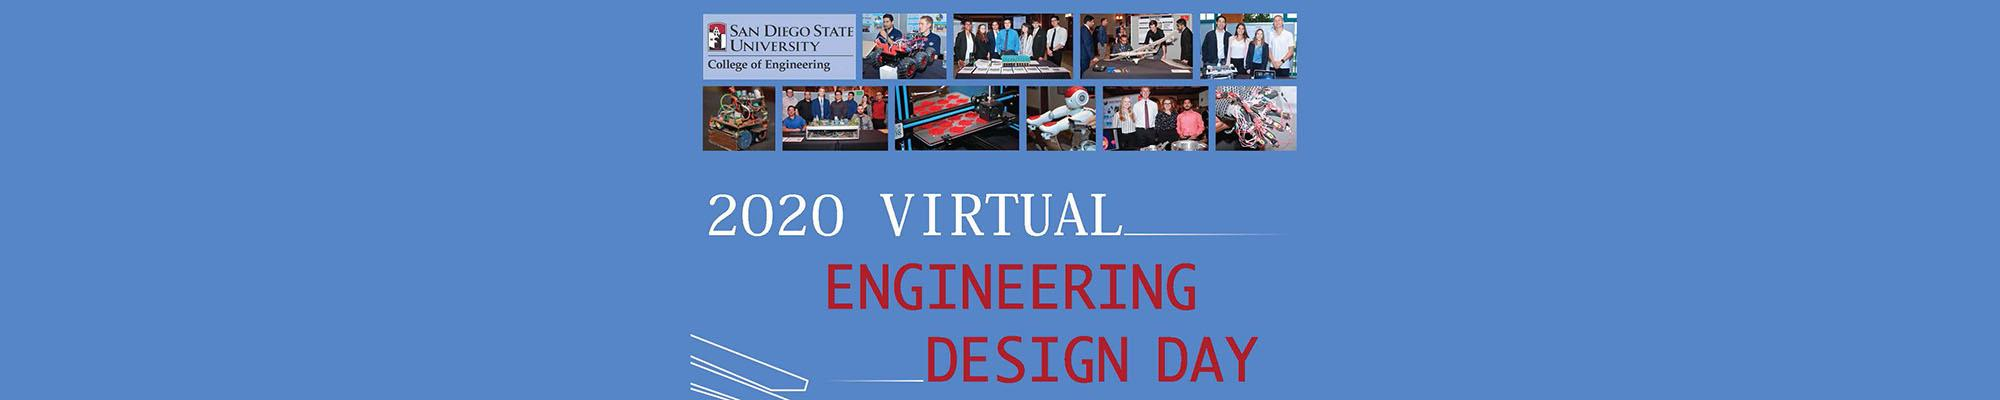 Virtual Design Day